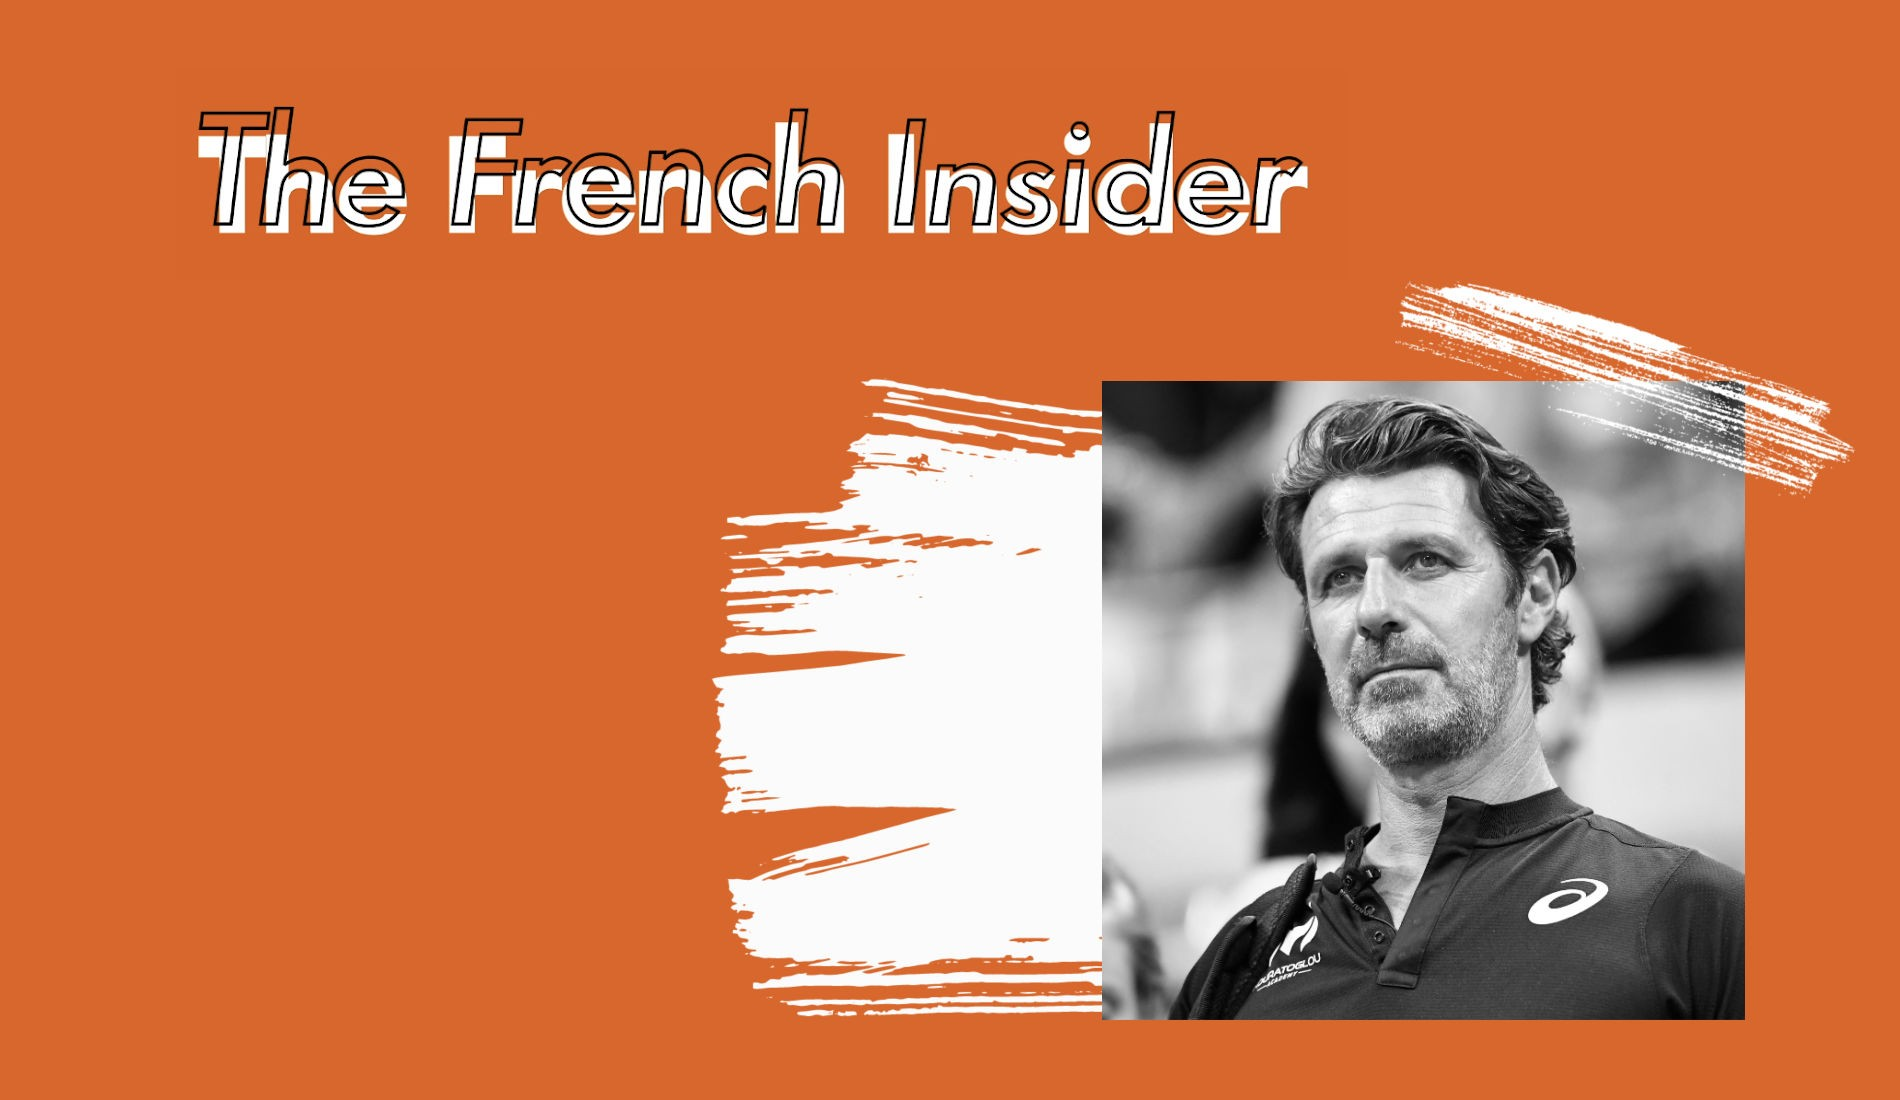 The French Insider #1: Patrick Mouratoglou